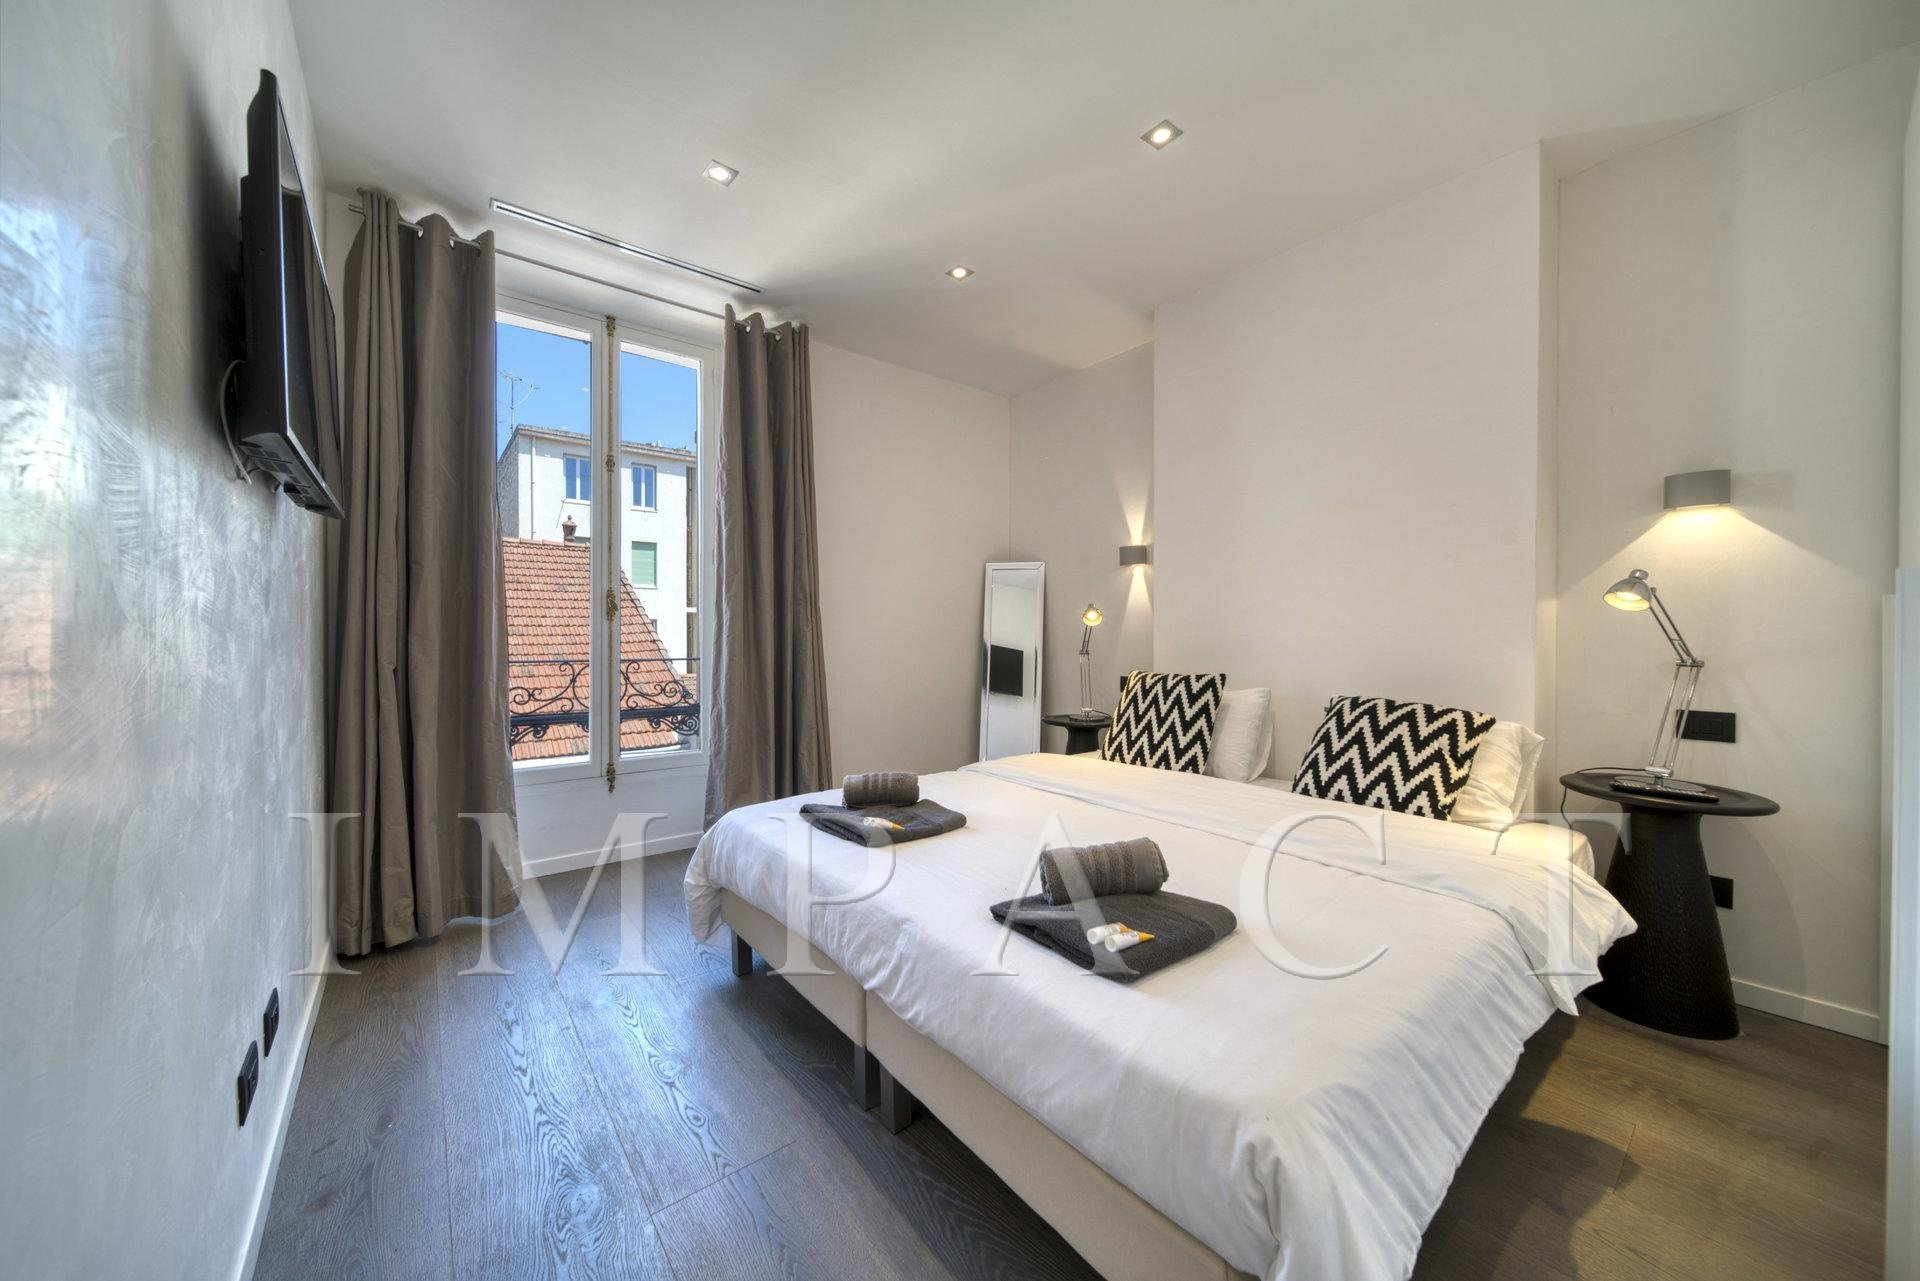 Modern and renovated 4 bedrooms apartment to rent, in Cannes, city center.